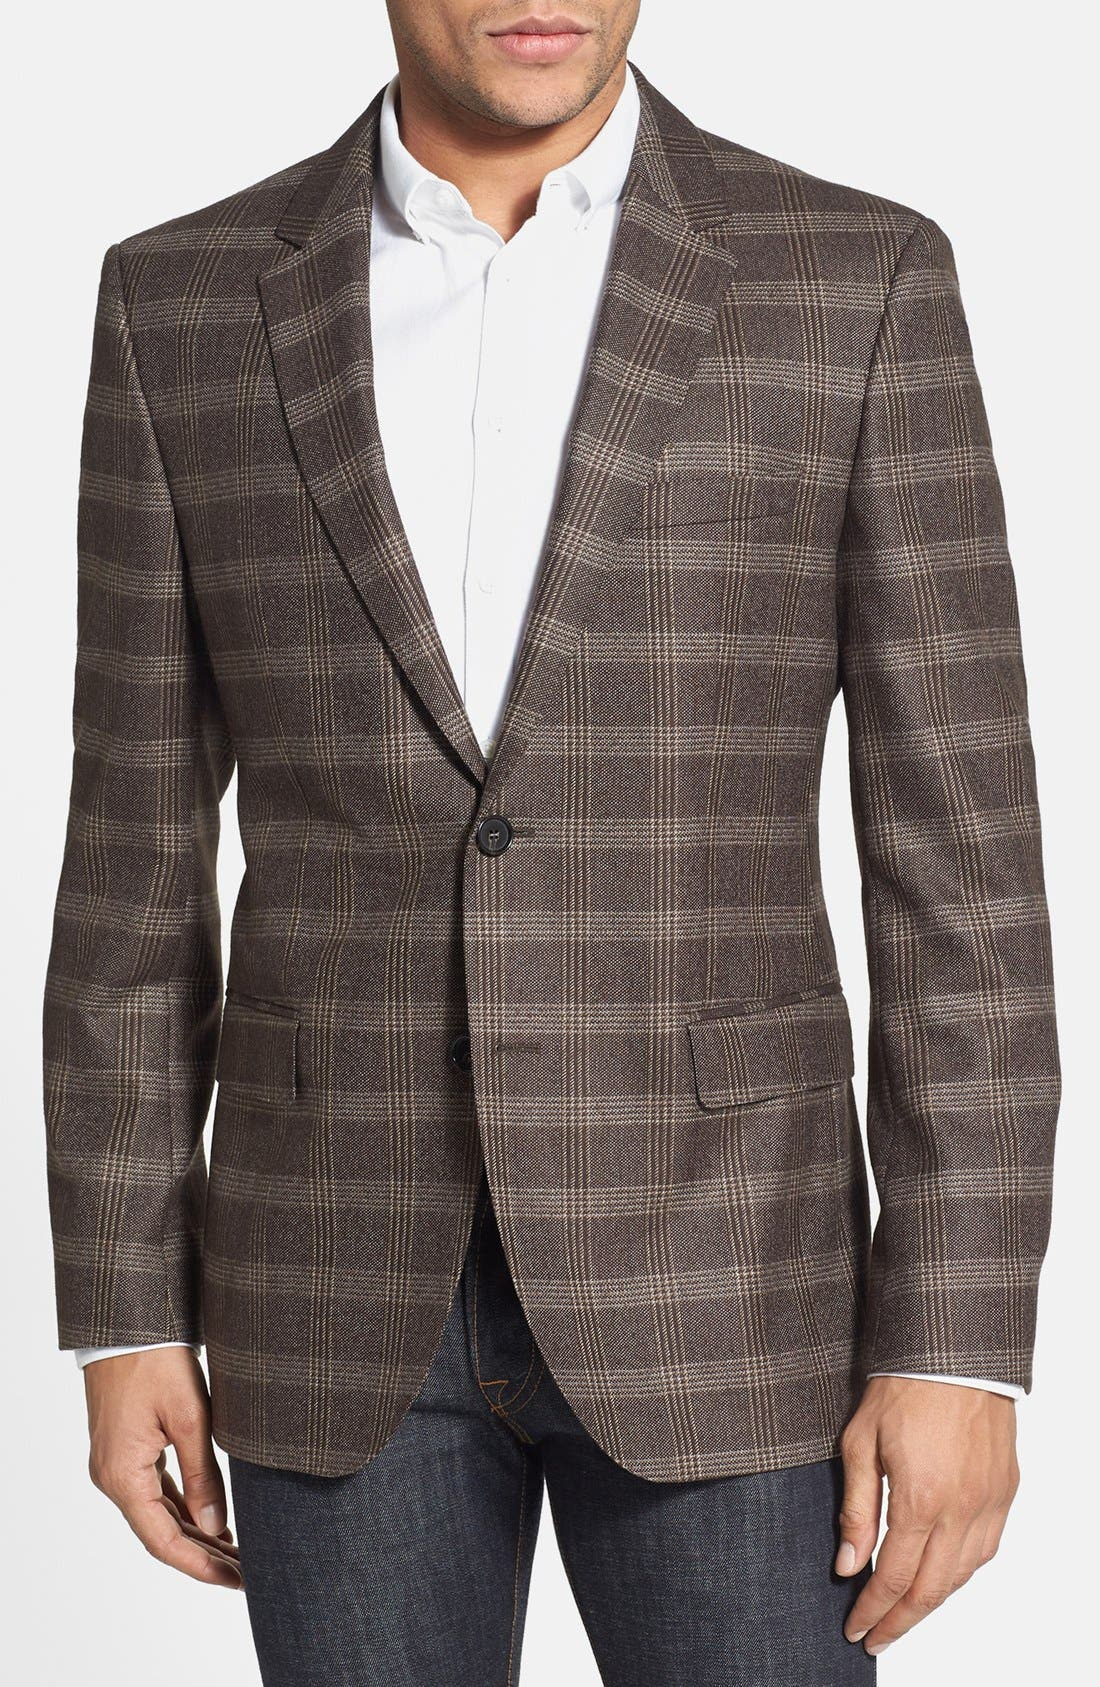 Main Image - BOSS HUGO BOSS 'The James' Trim Fit Plaid Sportcoat